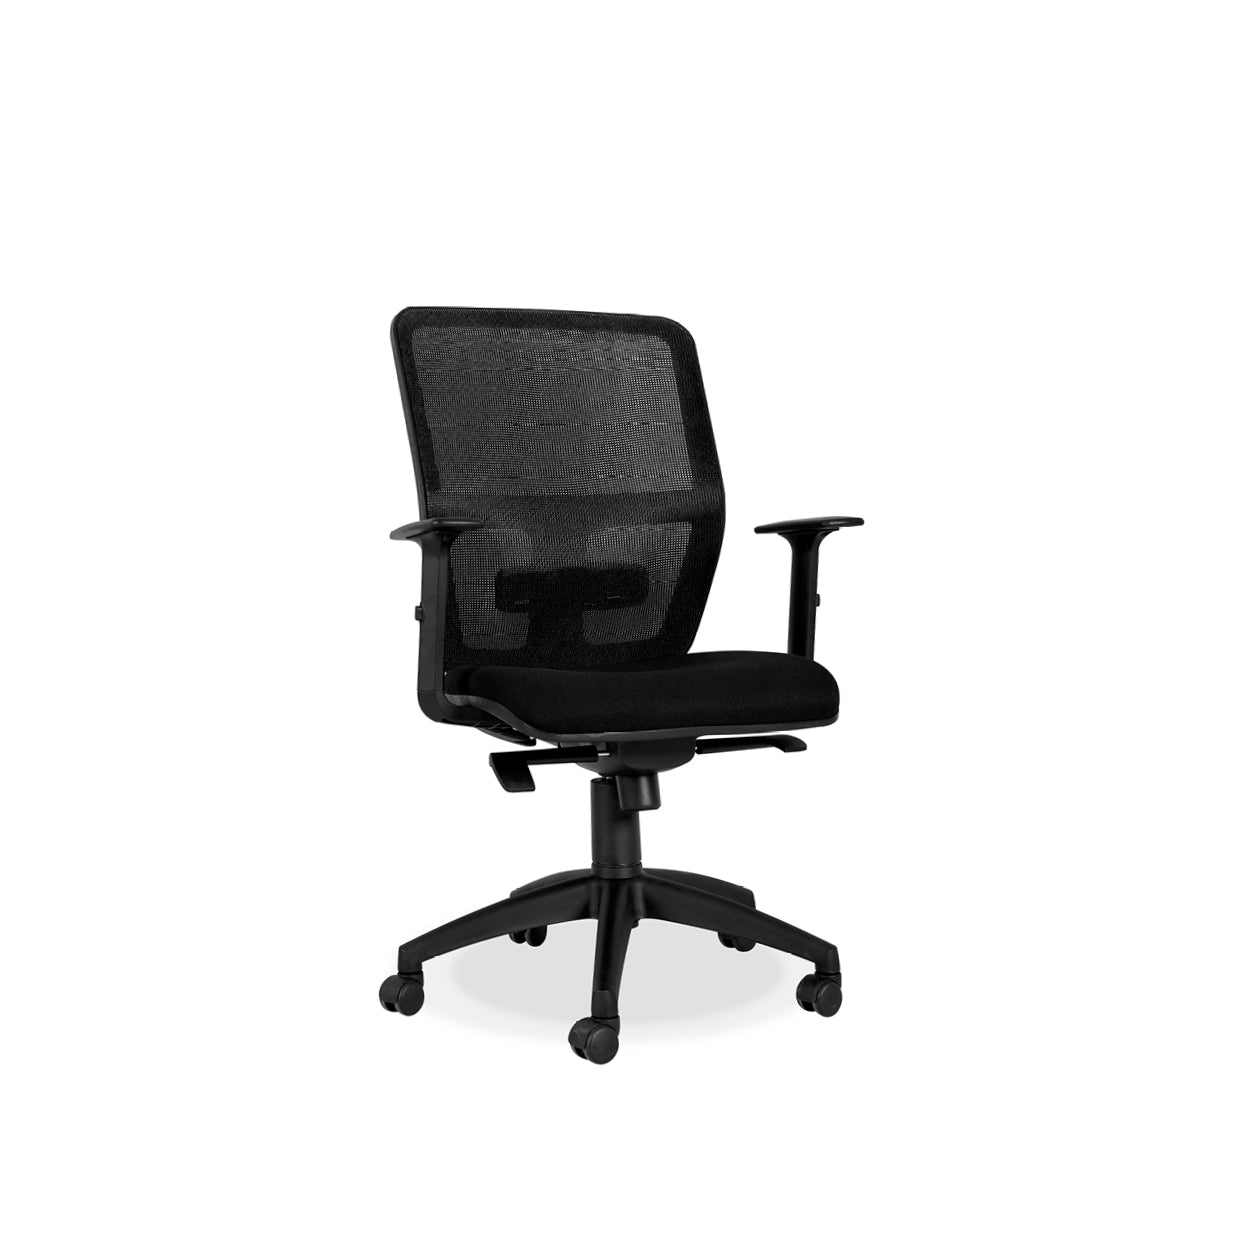 Hedcor Siena mid back office chair